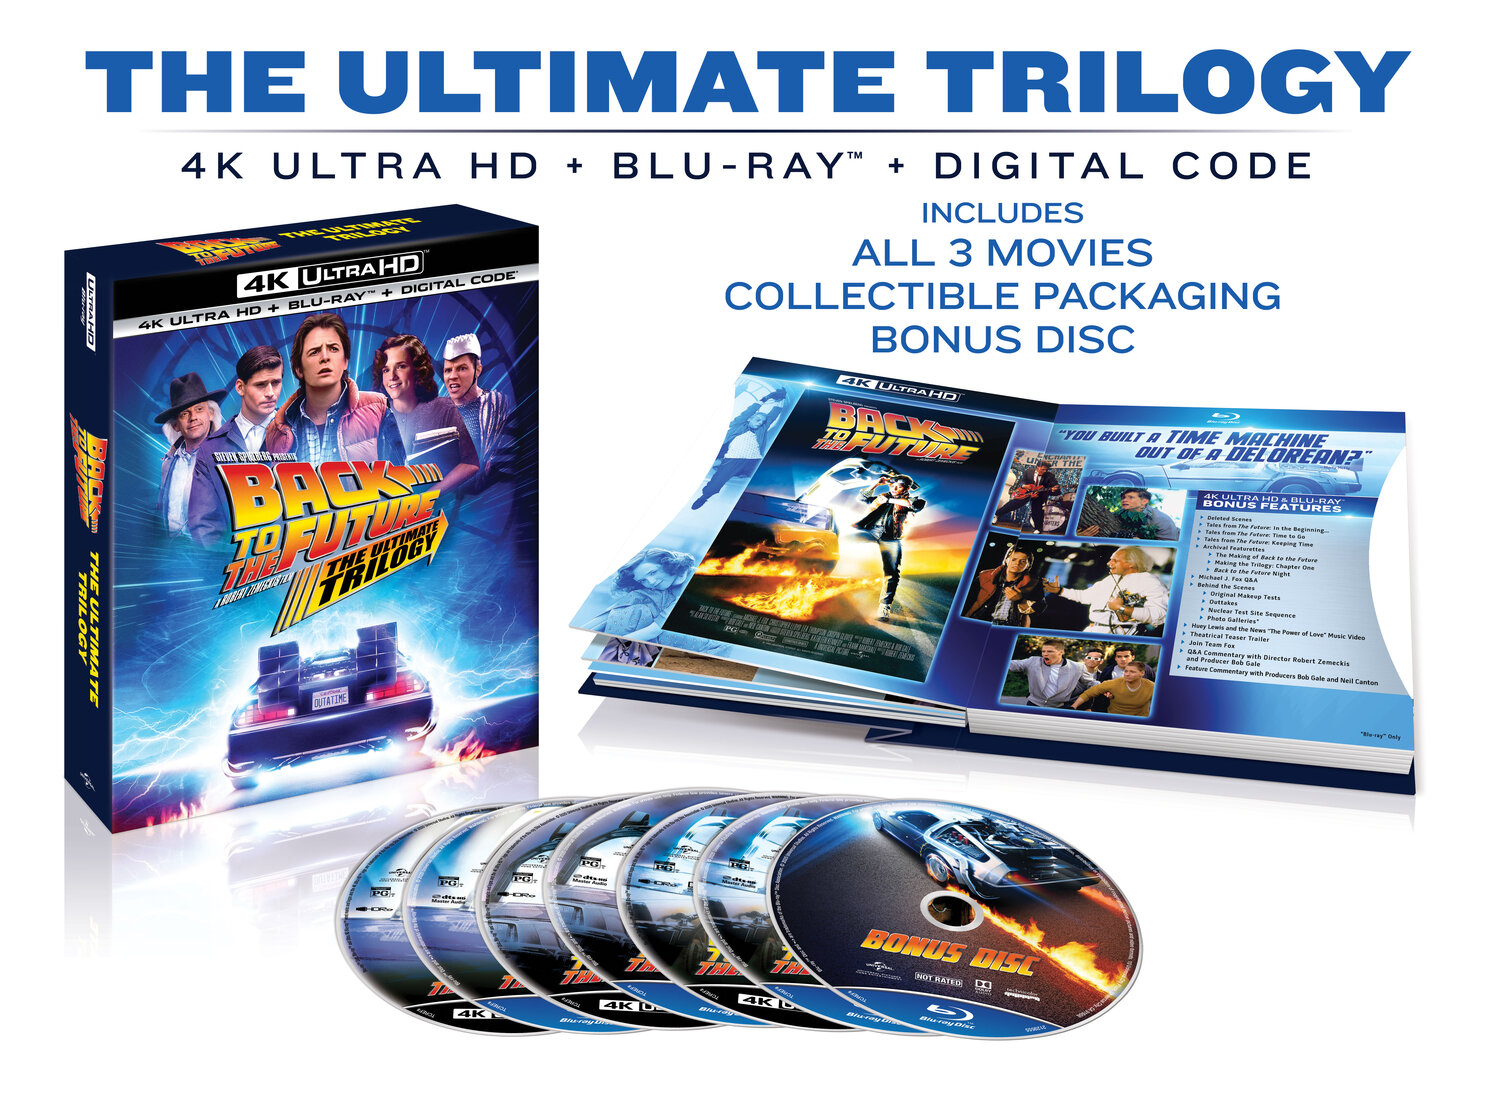 Back to the Future™ Trilogy — One of the Biggest Motion Picture Trilogies  Comes to 4K Ultra HD for the First Time Ever